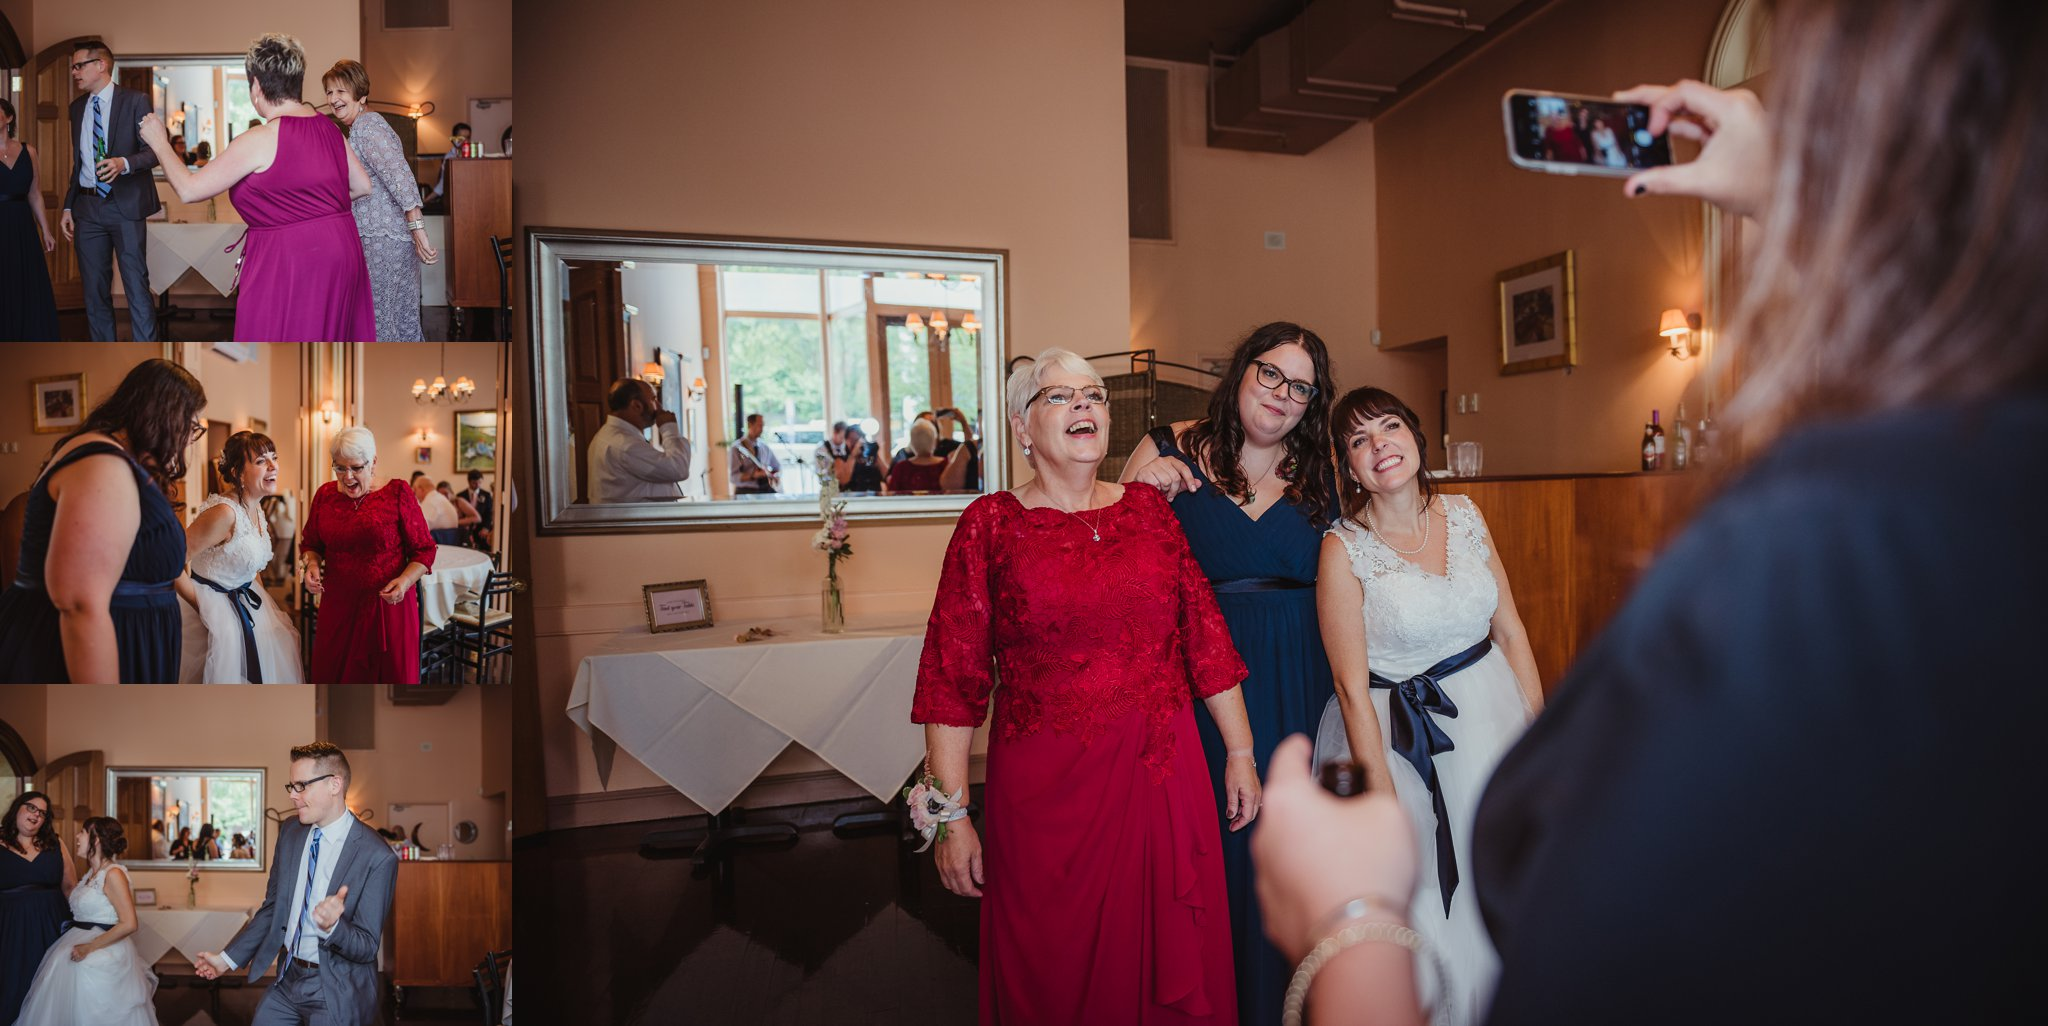 Guests were having a lot of fun dancing during the wedding reception at Caffe Luna, pictures taken by Rose Trail Images in Raleigh, NC.